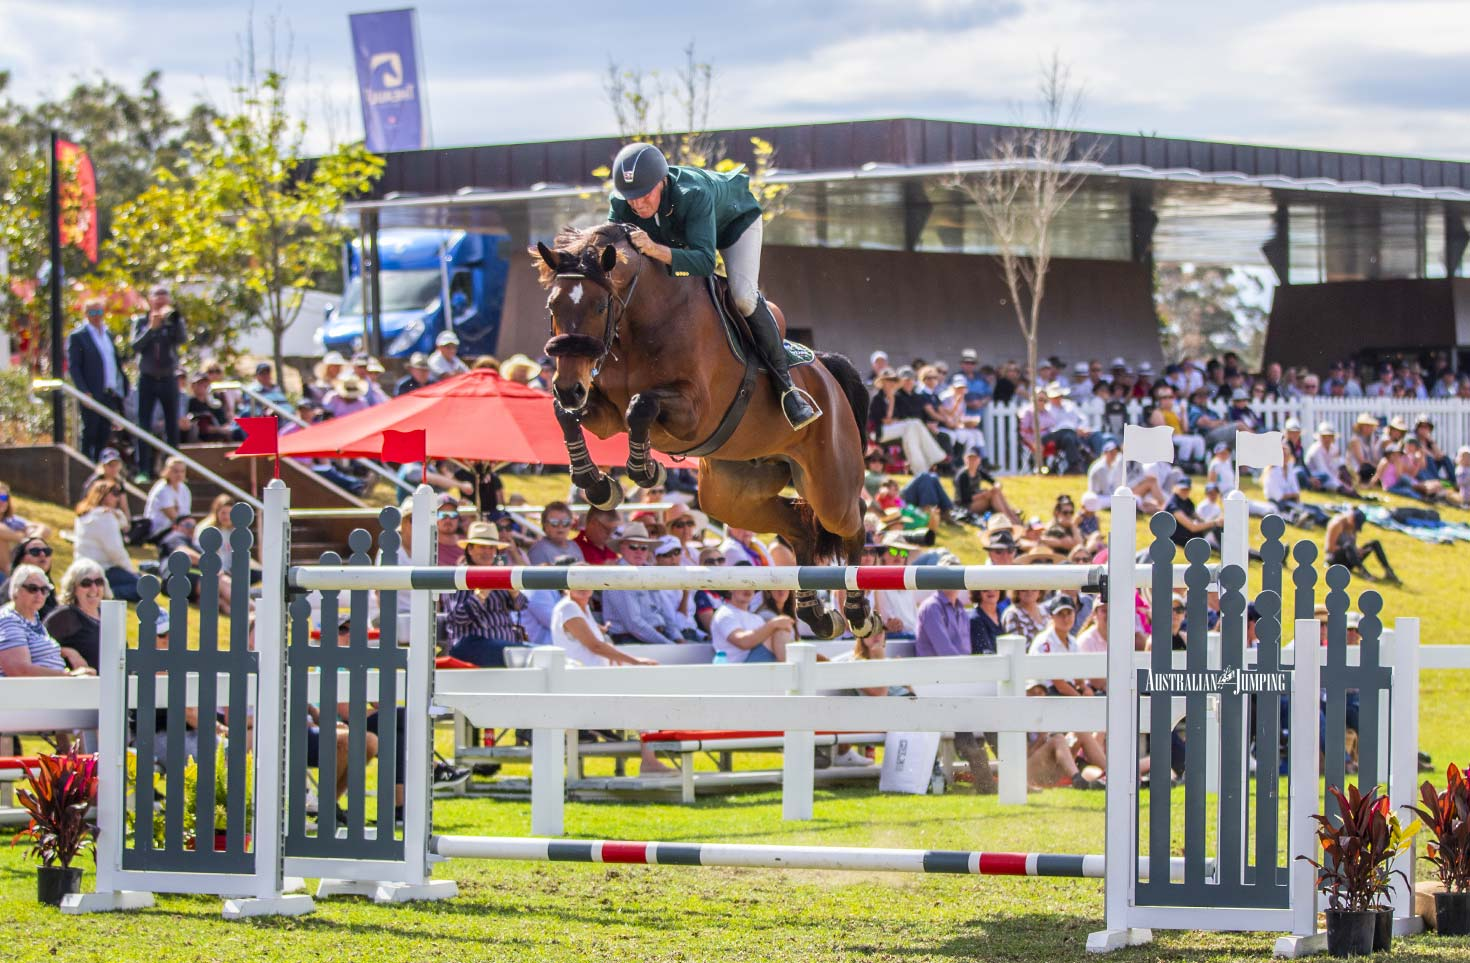 Chuggy Equestrian thrill the crowd at Willinga Park